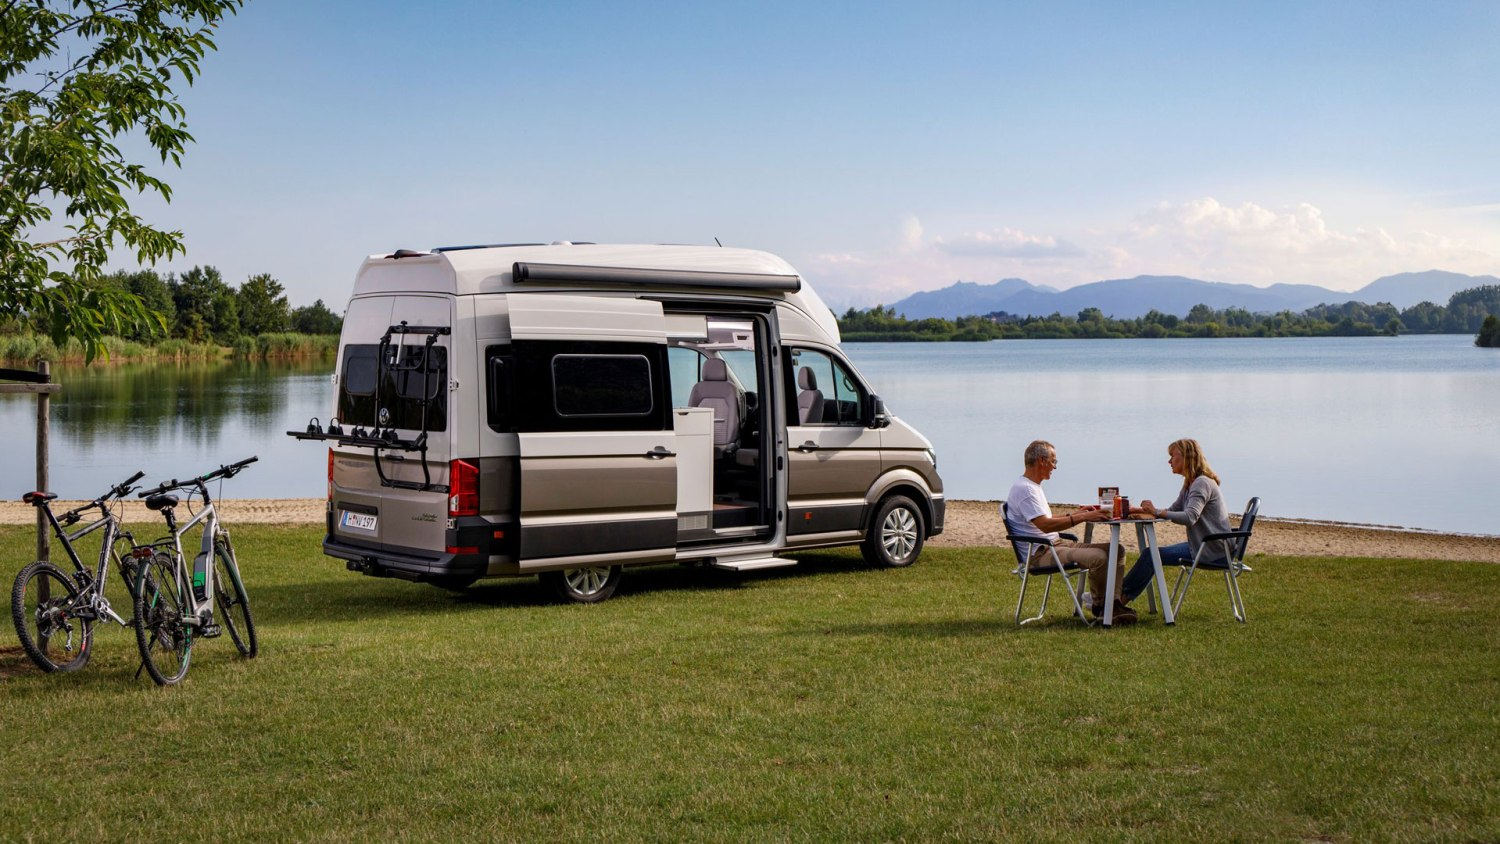 Caravan, Camping and Motorhome Show – 19-24 February